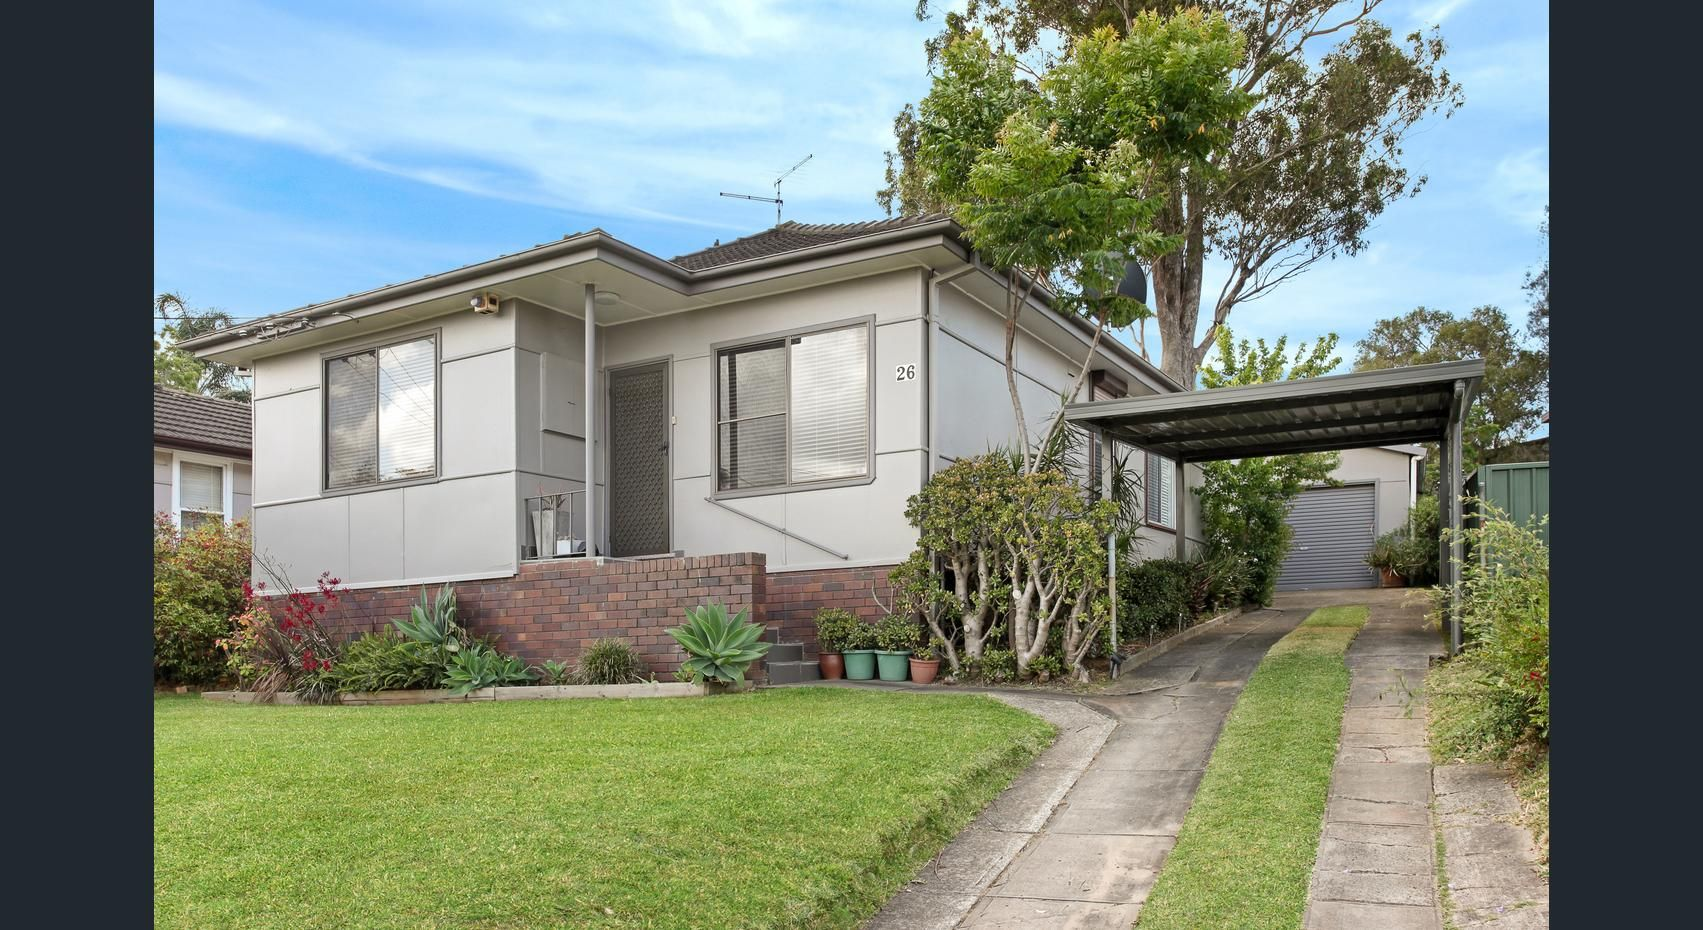 26 Mamie Avenue, Seven Hills NSW 2147, Image 0